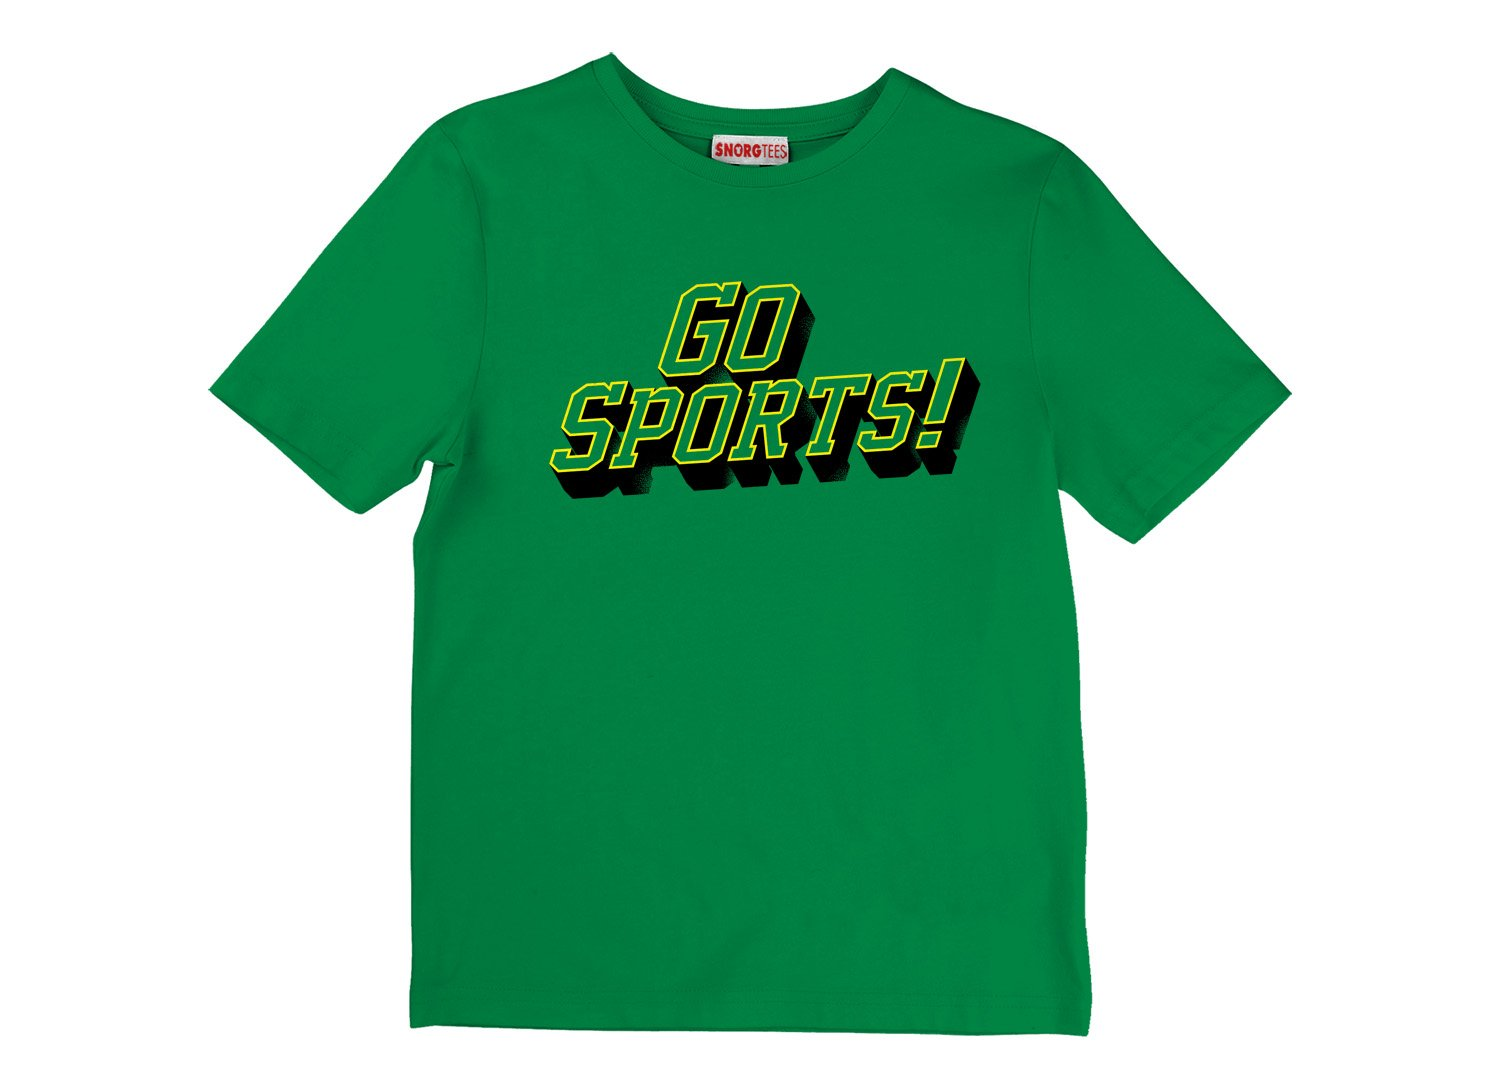 Go Sports! on Kids T-Shirt